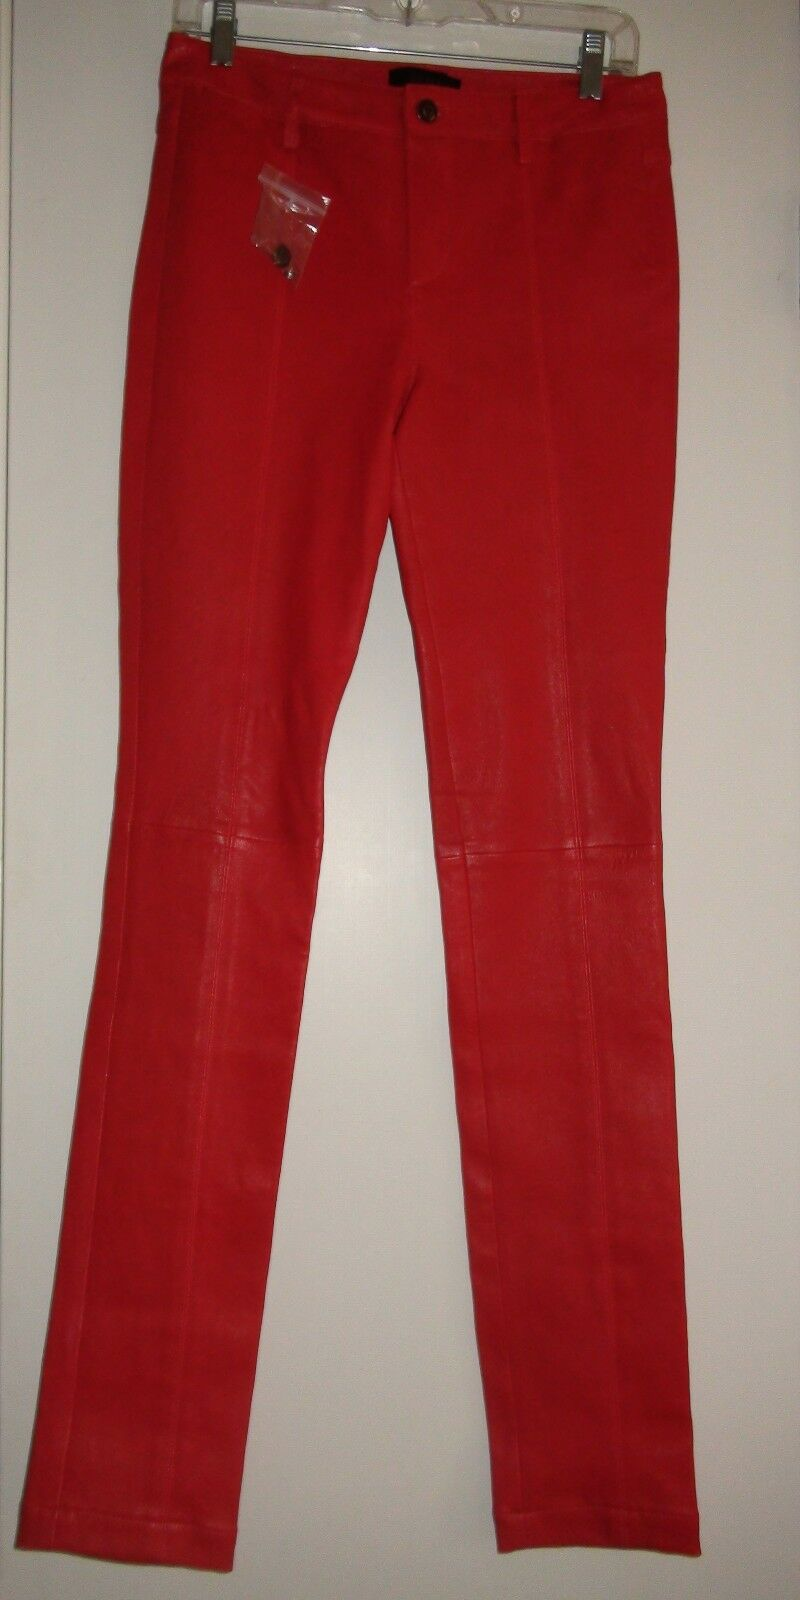 Diesel Red 100% Lamb Leather Pants Sz 27 NEW Woman's